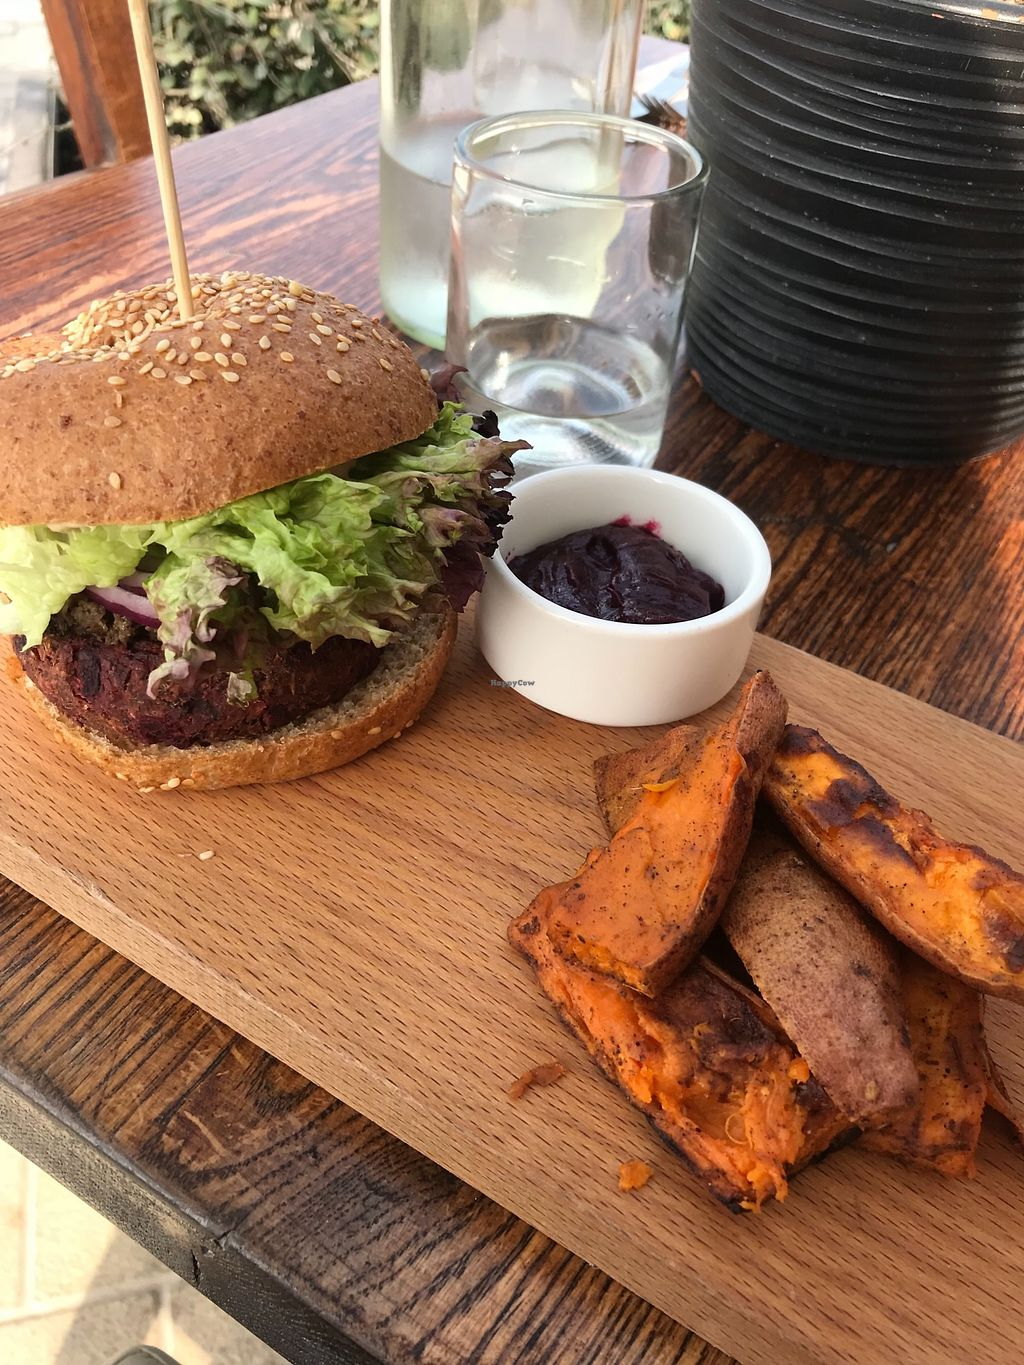 "Photo of Evergreen Organics  by <a href=""/members/profile/AshleighC"">AshleighC</a> <br/>The badass burger and sweet potato wedges <br/> February 23, 2018  - <a href='/contact/abuse/image/74739/362832'>Report</a>"